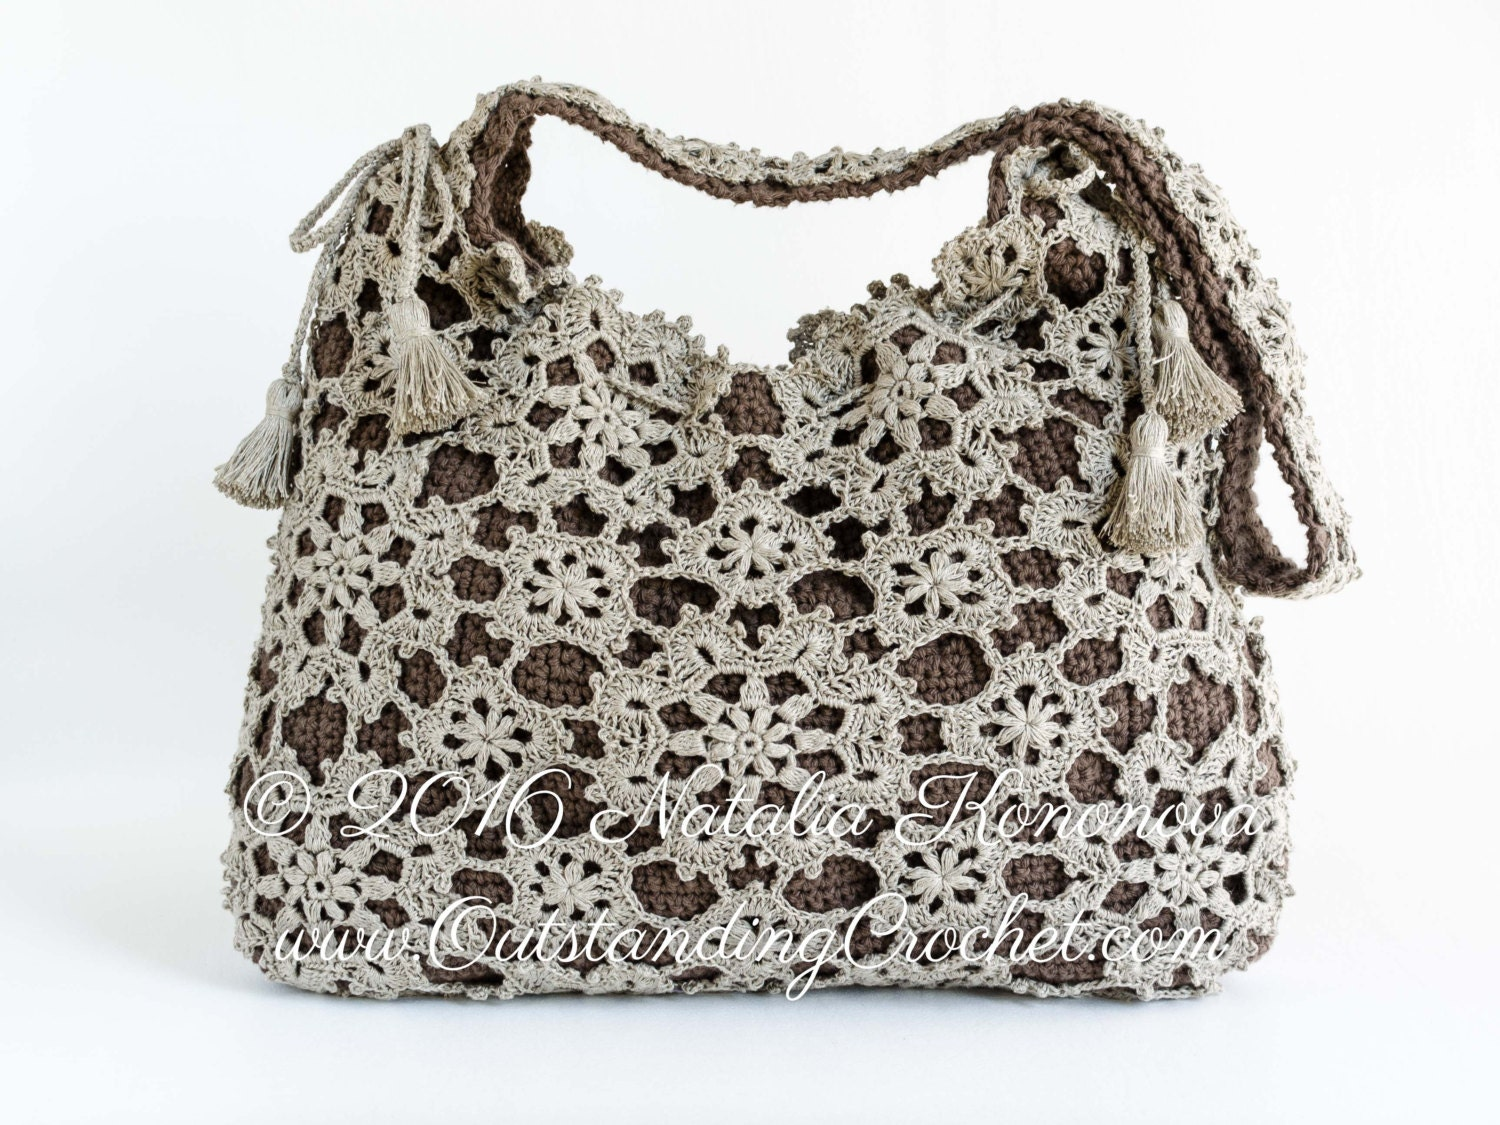 Crochet Bucket Bag Pattern : ... Evening Bags Crossbody Bags Hobo Bags Shoulder Bags Top Handle Bags